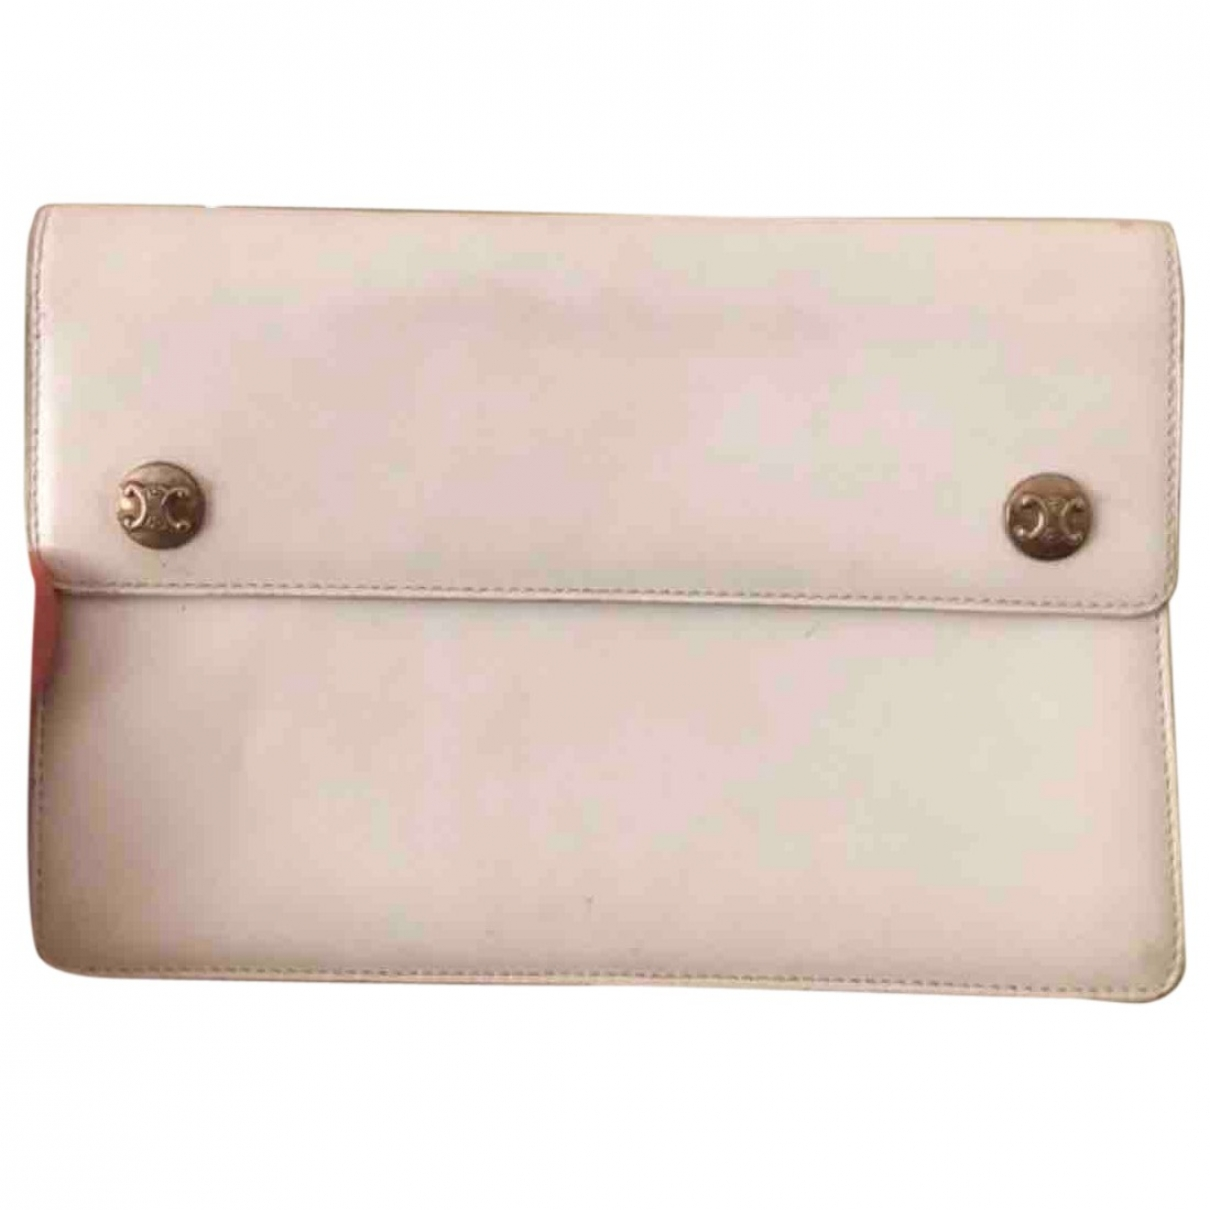 Celine \N White Leather Clutch bag for Women \N